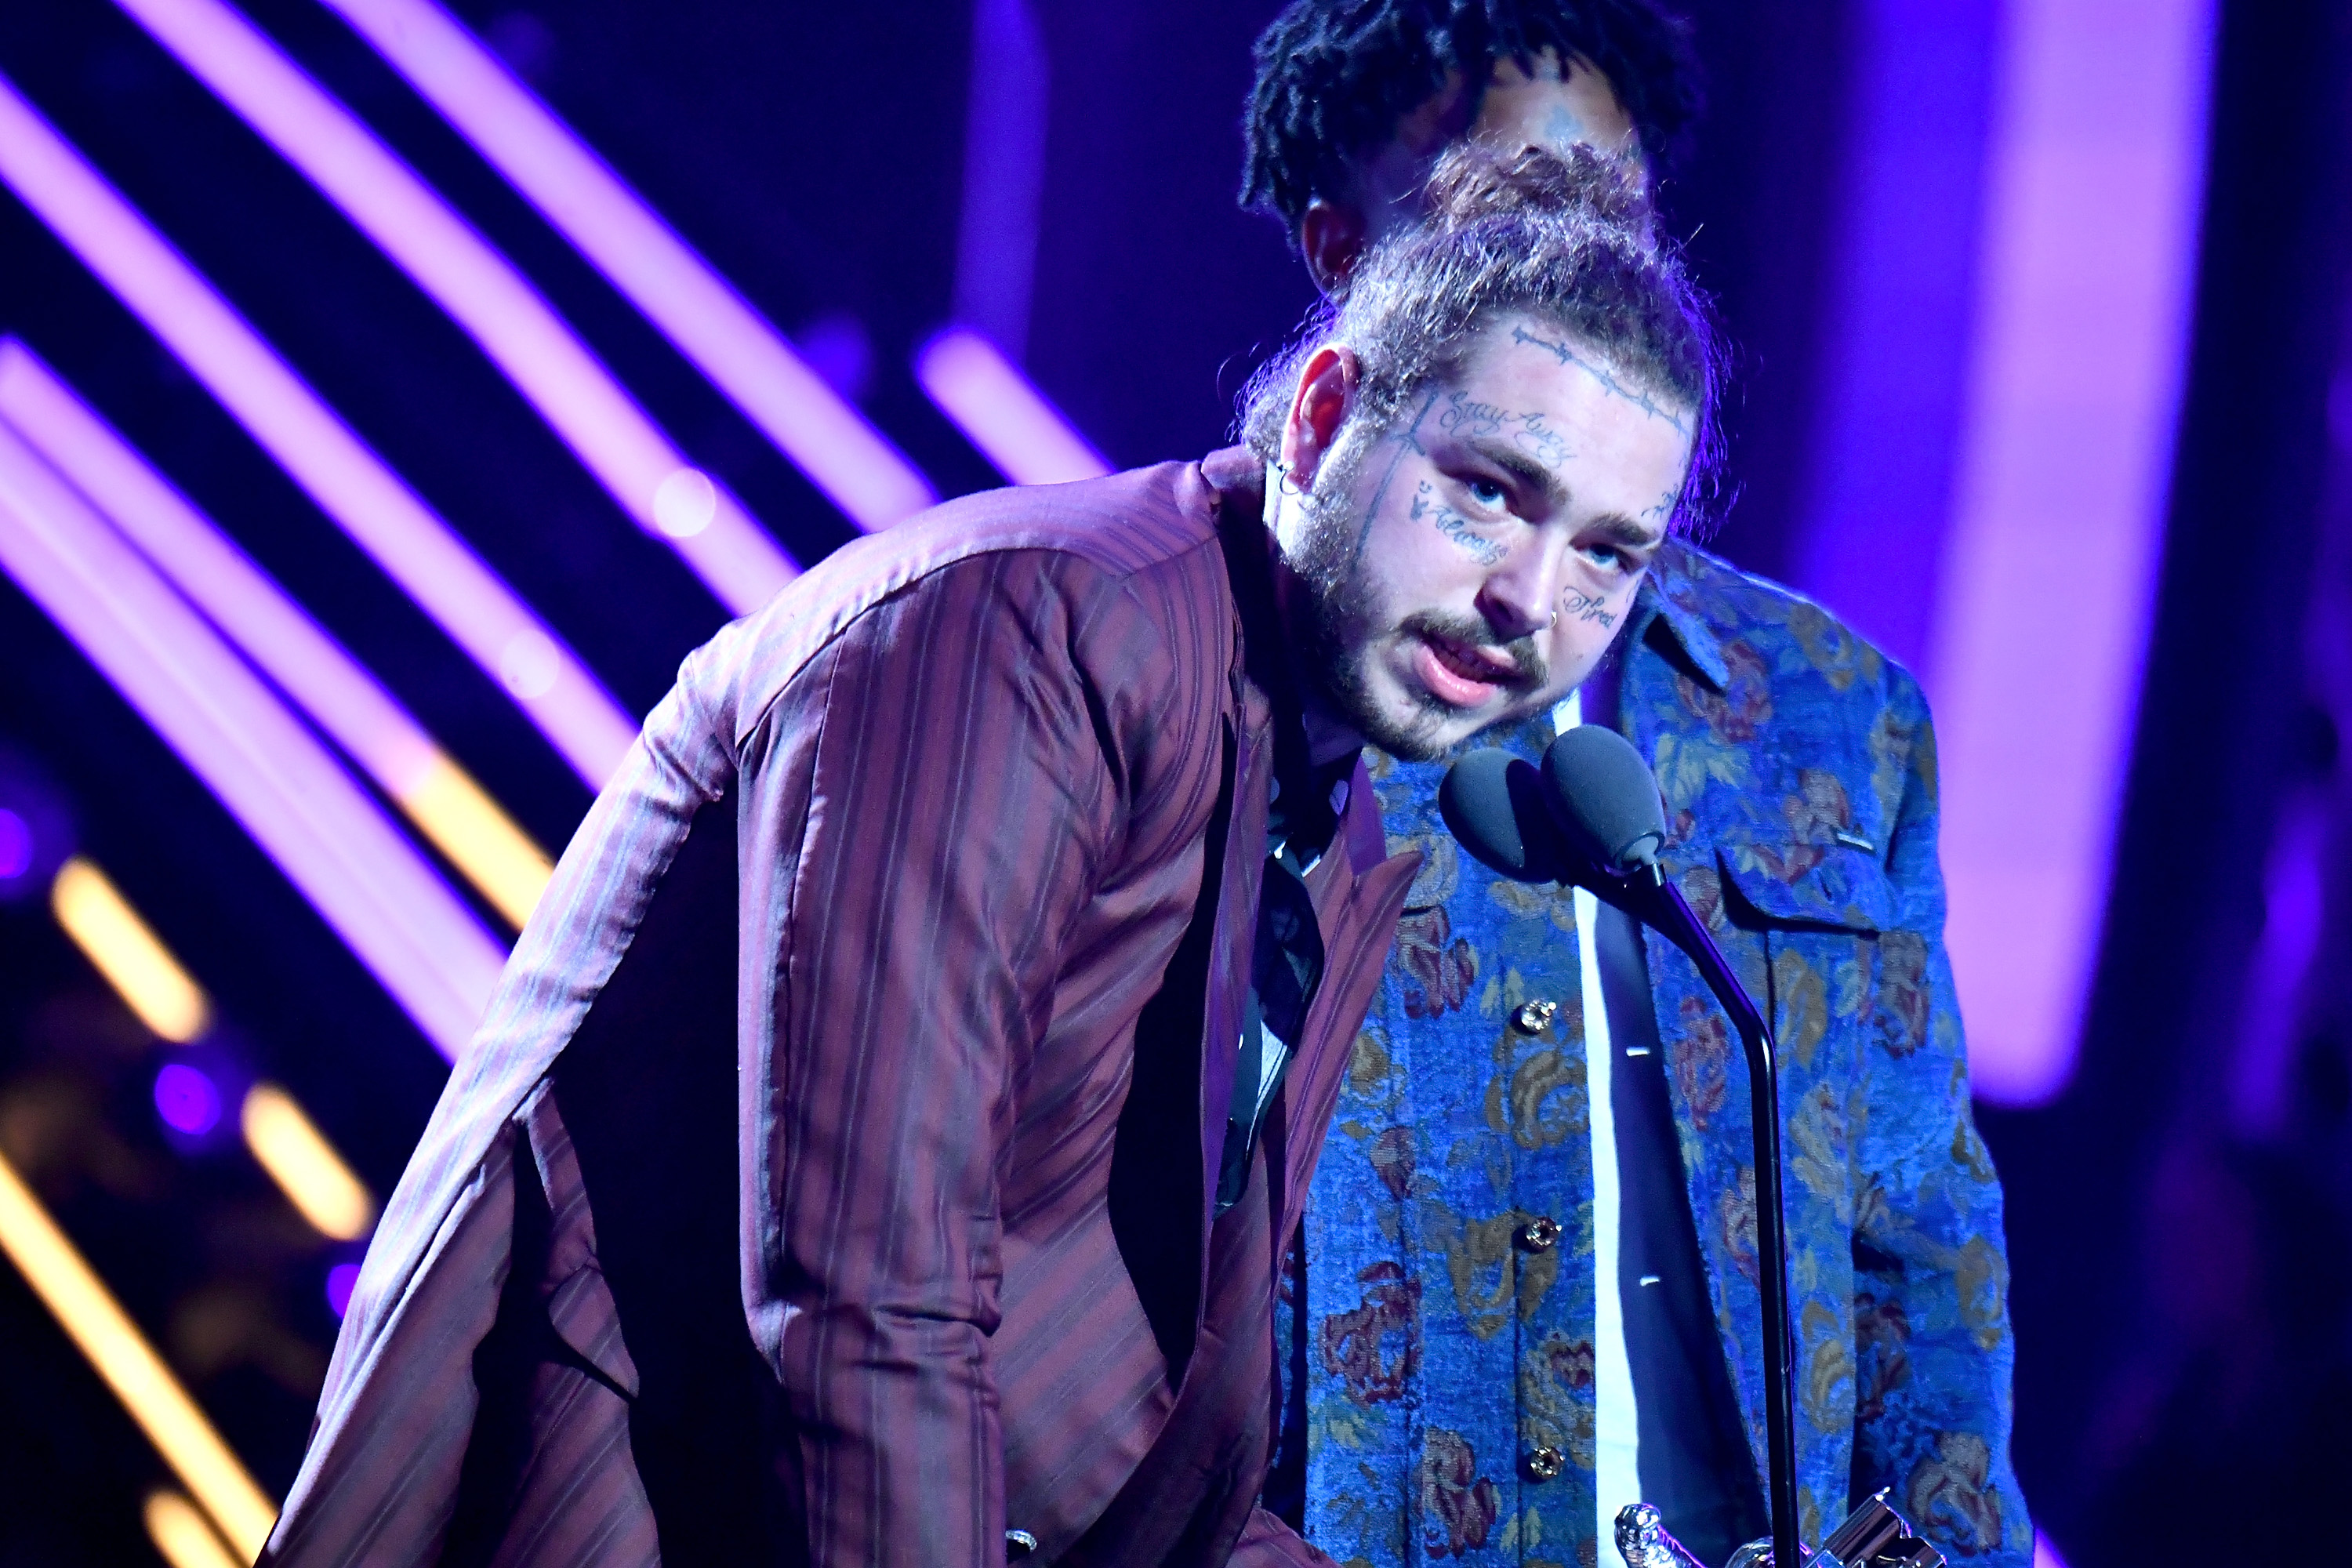 Post-Malone's-Plane-Safely-Lands-In-New-York-After-Tires-Blew-Out-On-Takeoff